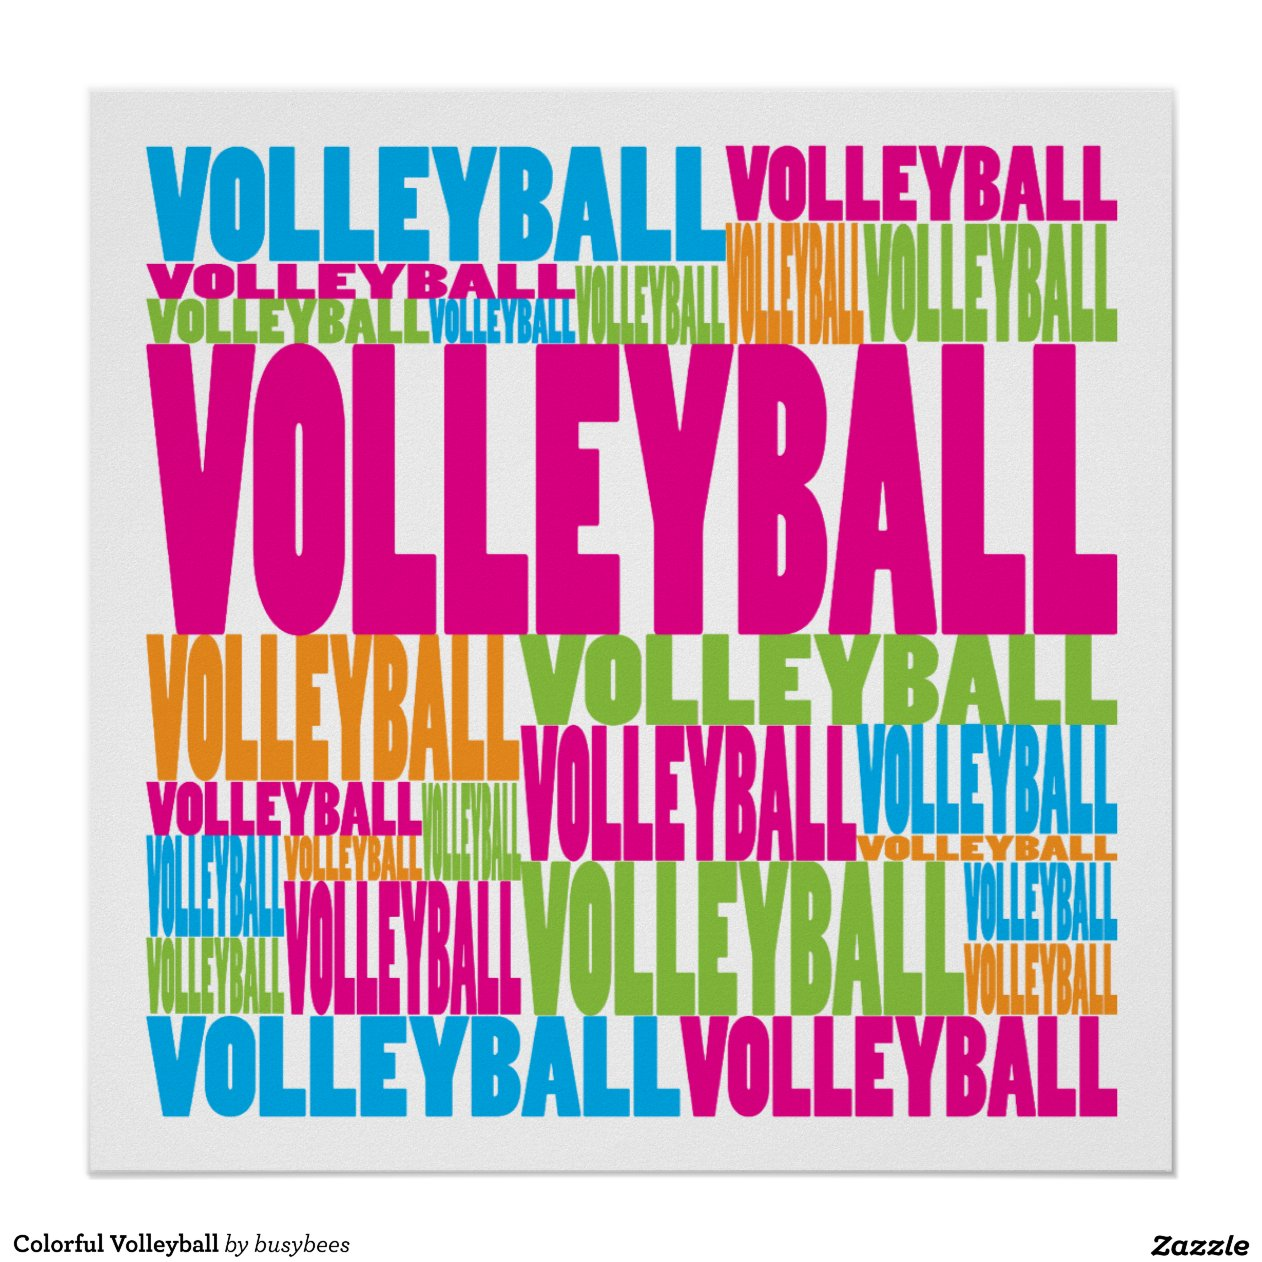 Colorful Volleyball Poster